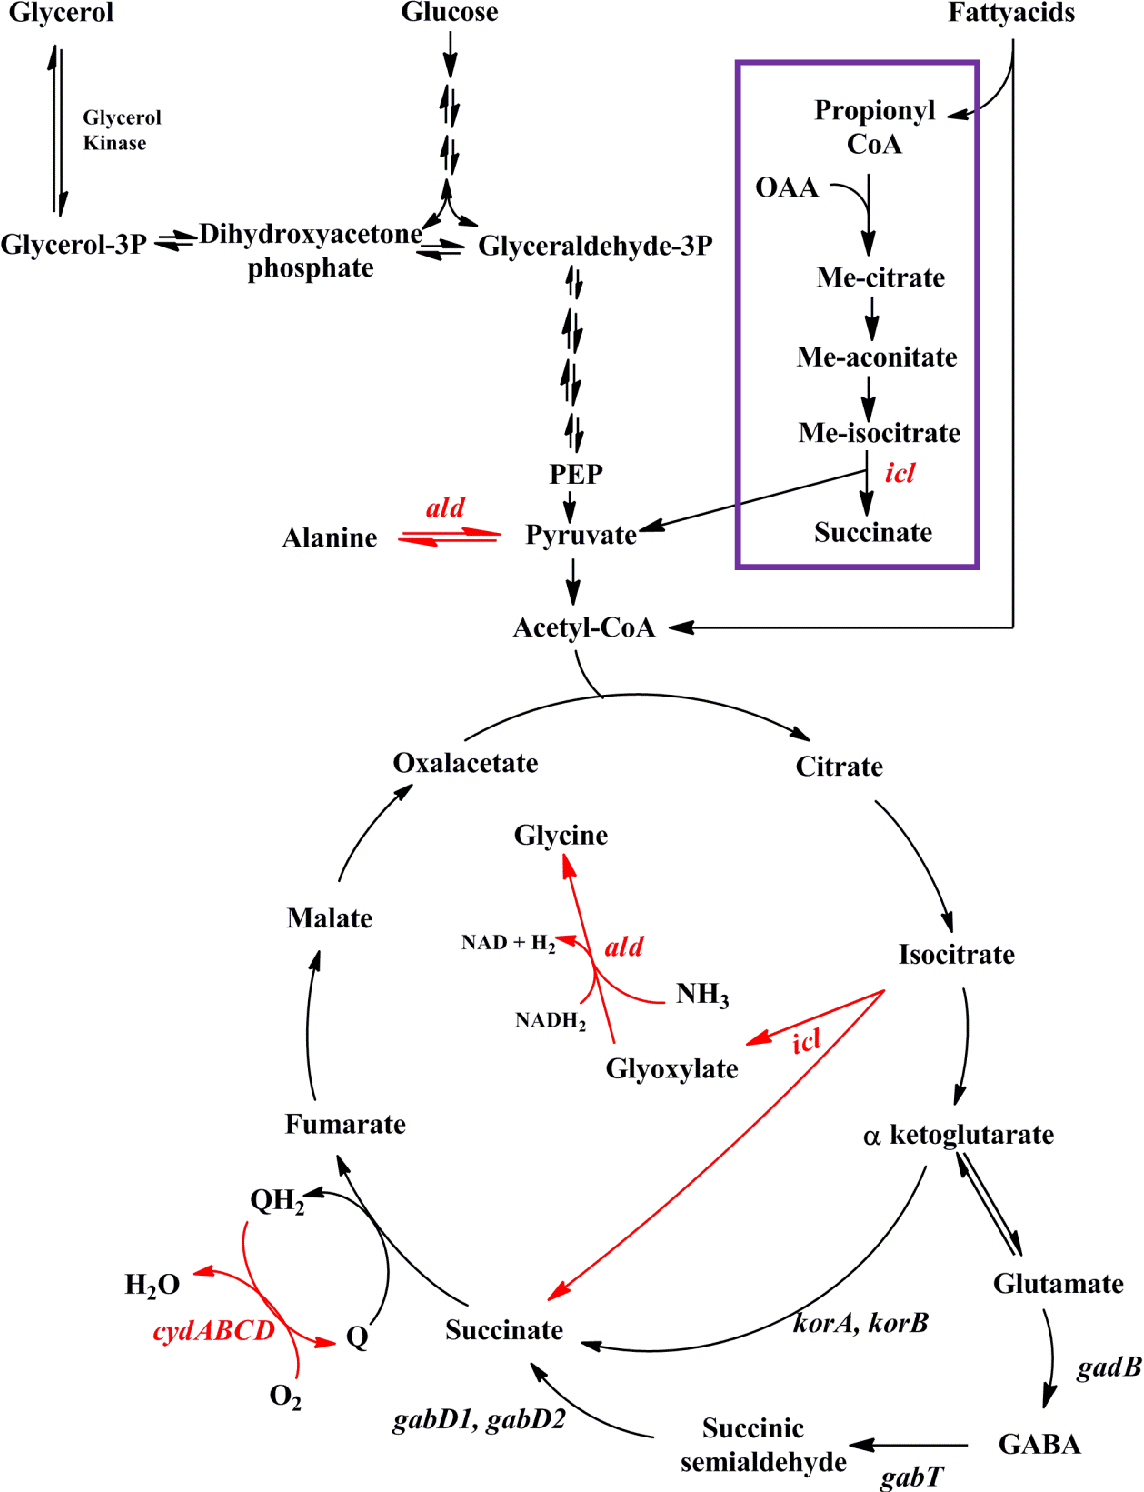 Figure 3.6: Drawing of M. tuberculosis central carbon metabolism. Shown is a minimalistic depiction of central carbon metabolism in M. tuberculosis. Genes encoding enzymes responsible for specific steps are shown. Genes upregulated in ΔsigC versus Erdman in Sauton medium are indicated (red arrows). The methylcitrate cycle is highlighted (purple box).